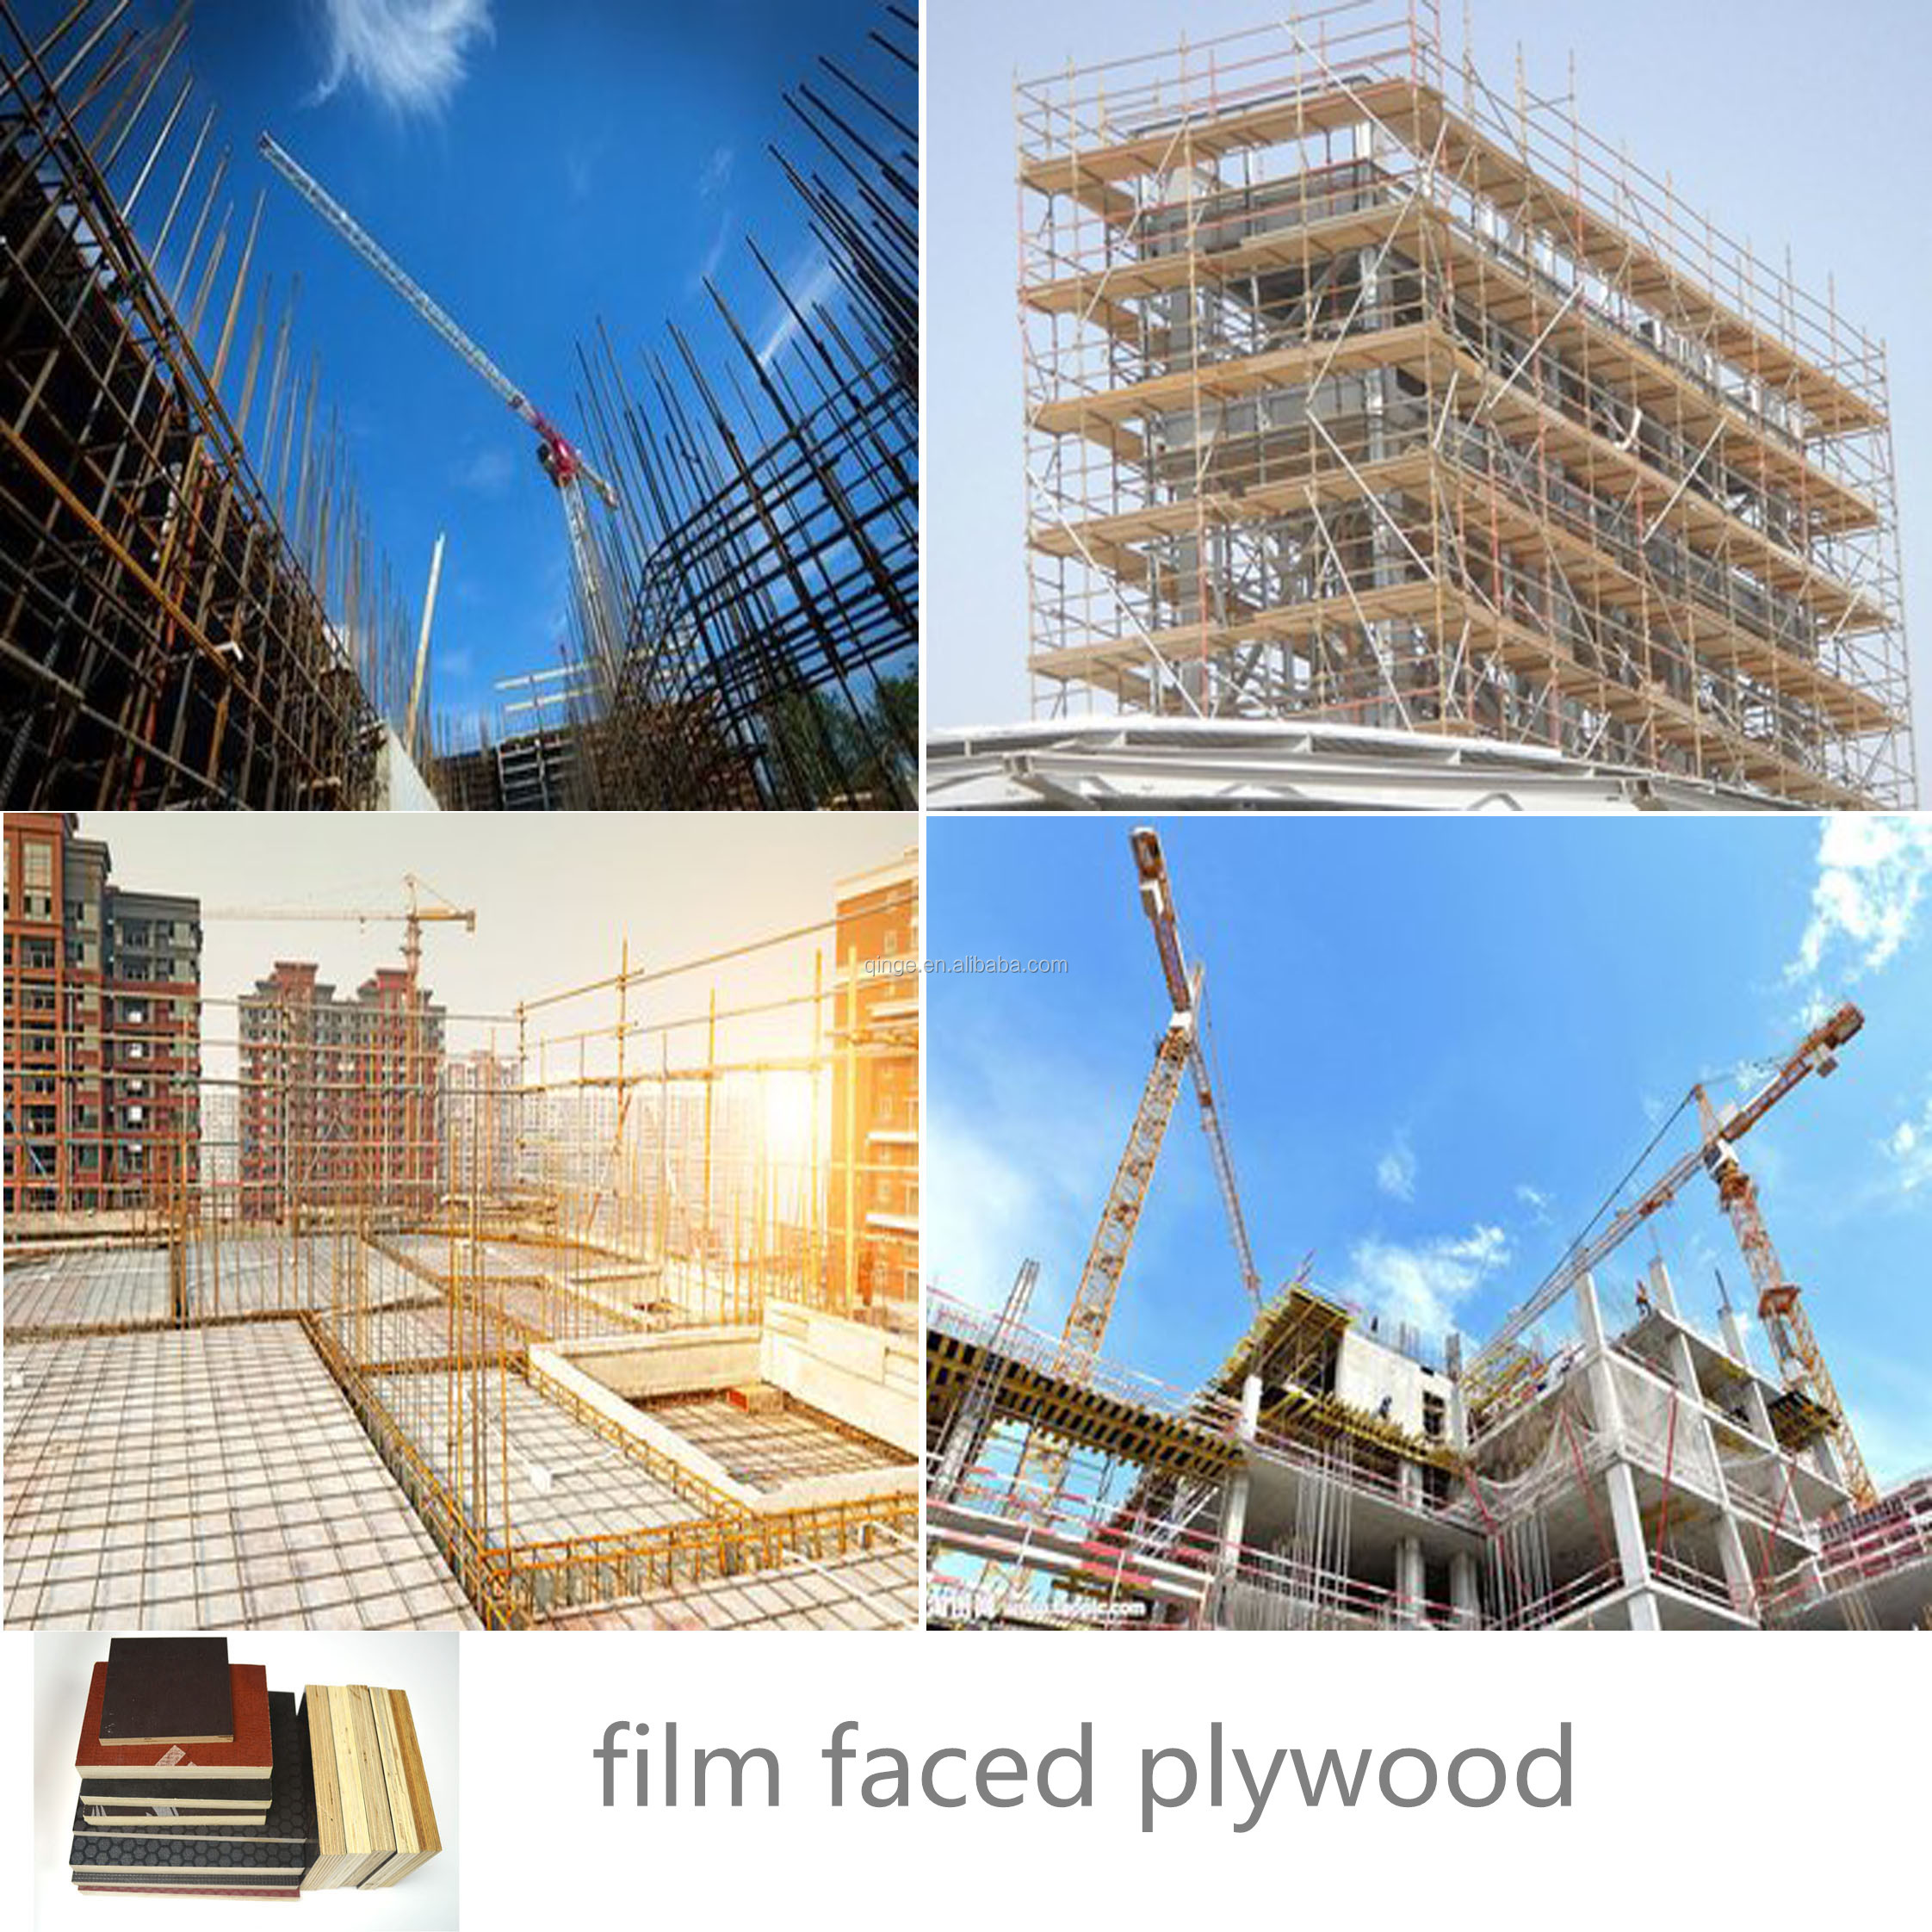 Oman 18mm Film Faced Plywood Weight Price Vs Marine Plywood - Buy Film  Faced Plywood Vs Marine Plywood,Film Faced Plywood Weight,Oman 18mm Film  Faced